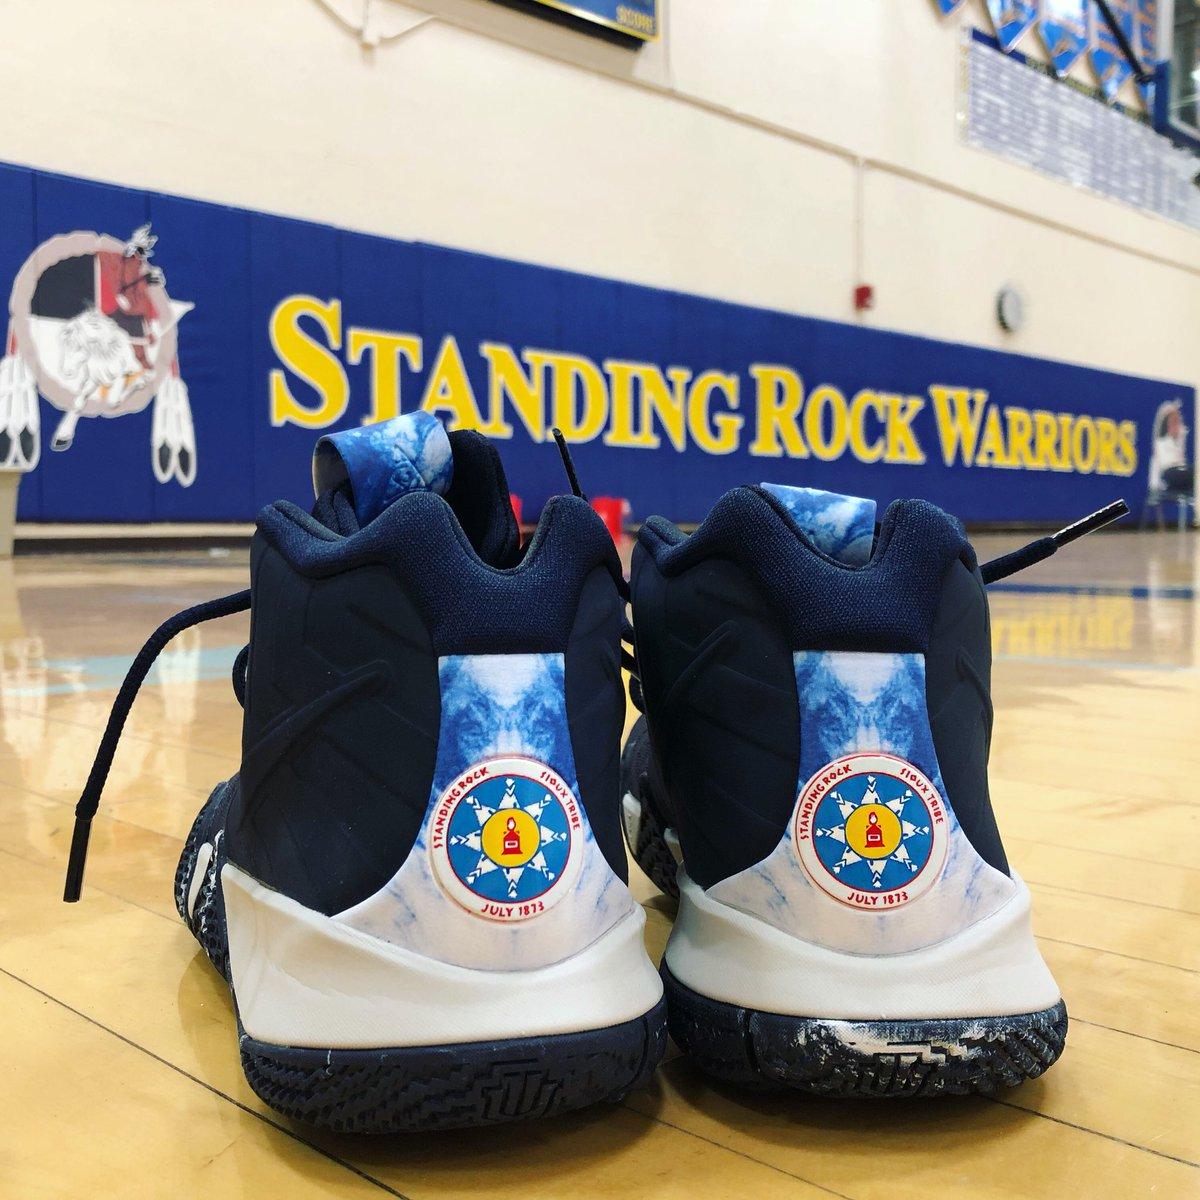 1ad550927529 Standing Rock Sioux Tribe to Host Homecoming for NBA Star Kyrie ...